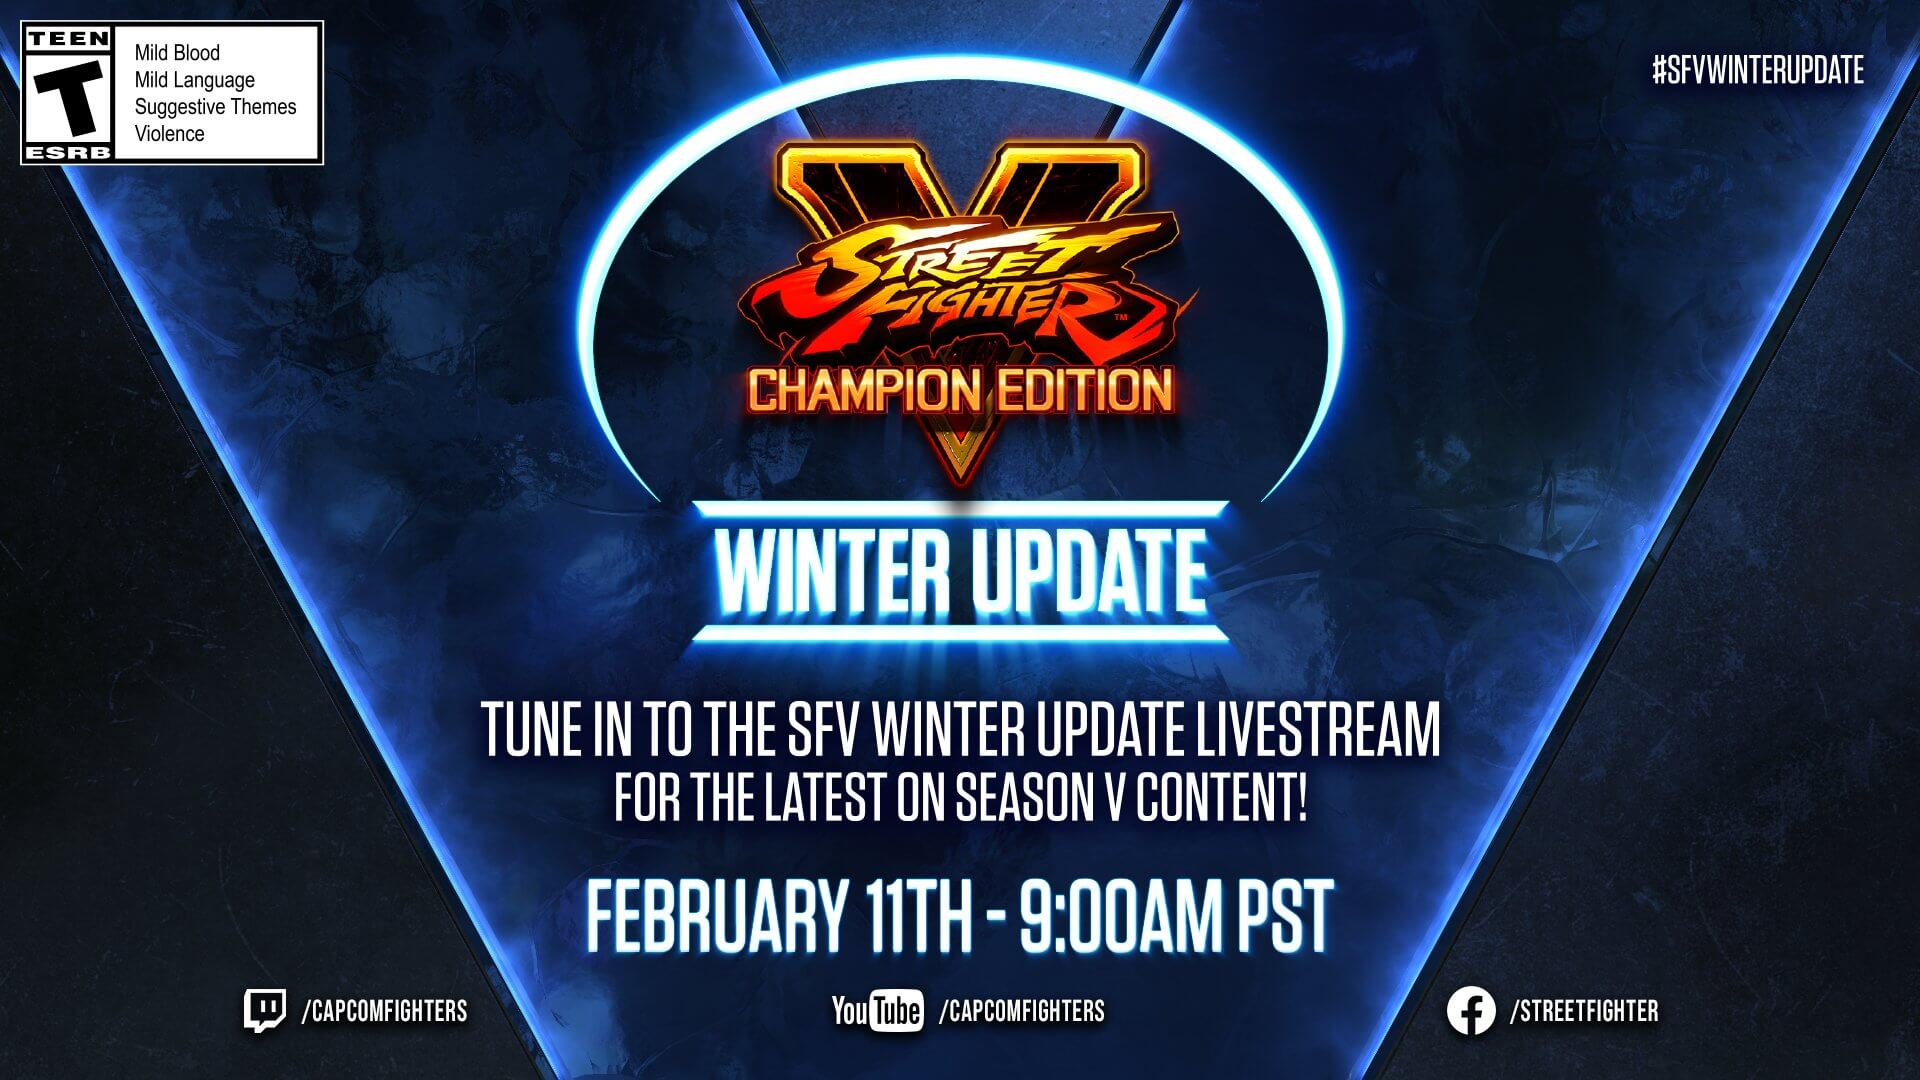 SFV Winter Update. What do we know? What to expect?